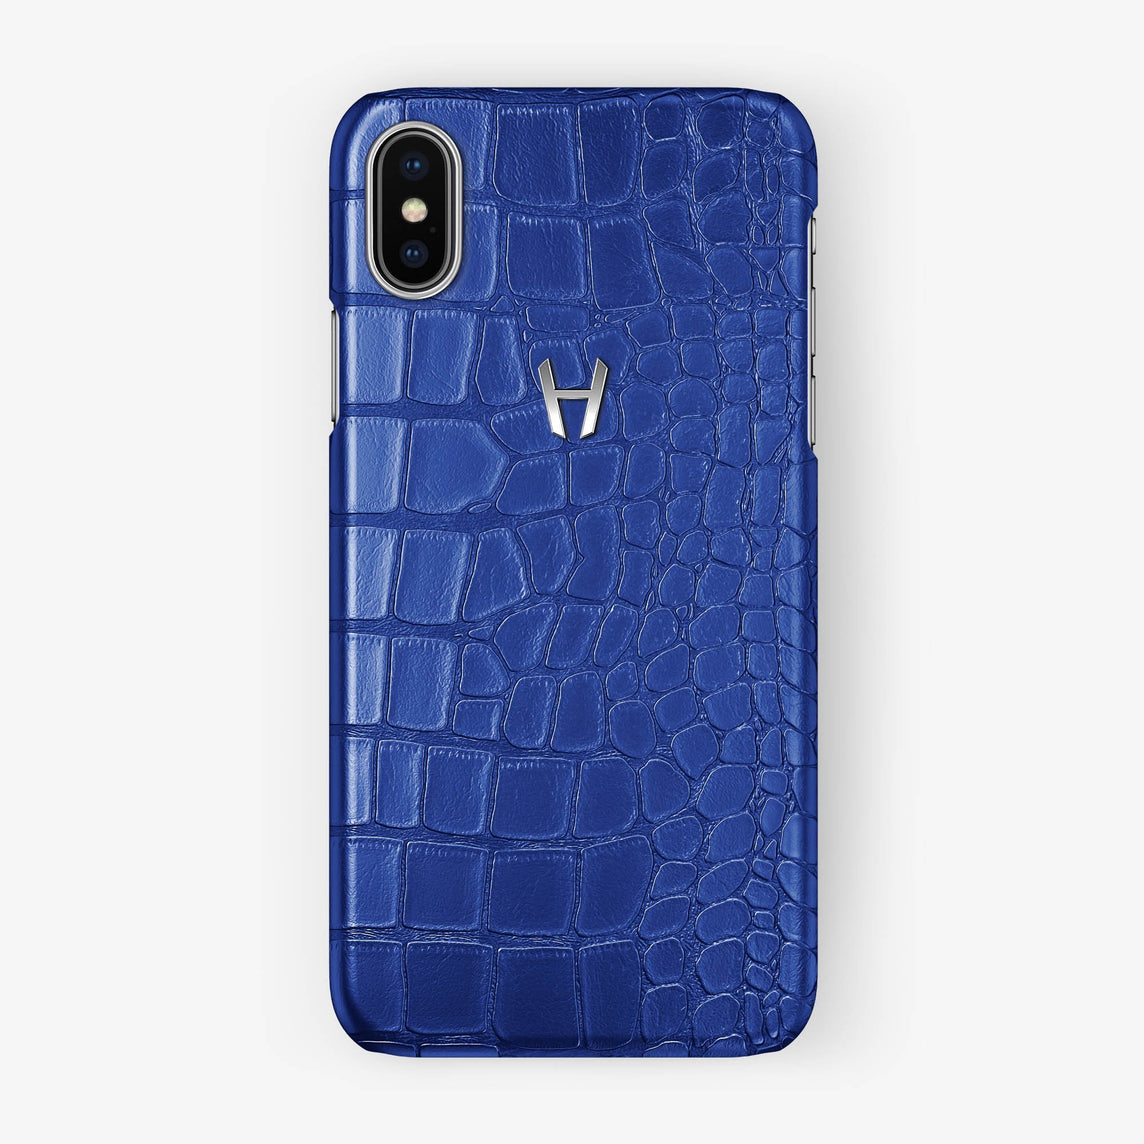 Alligator Case iPhone X/Xs | Peony Blue - Stainless Steel without-personalization